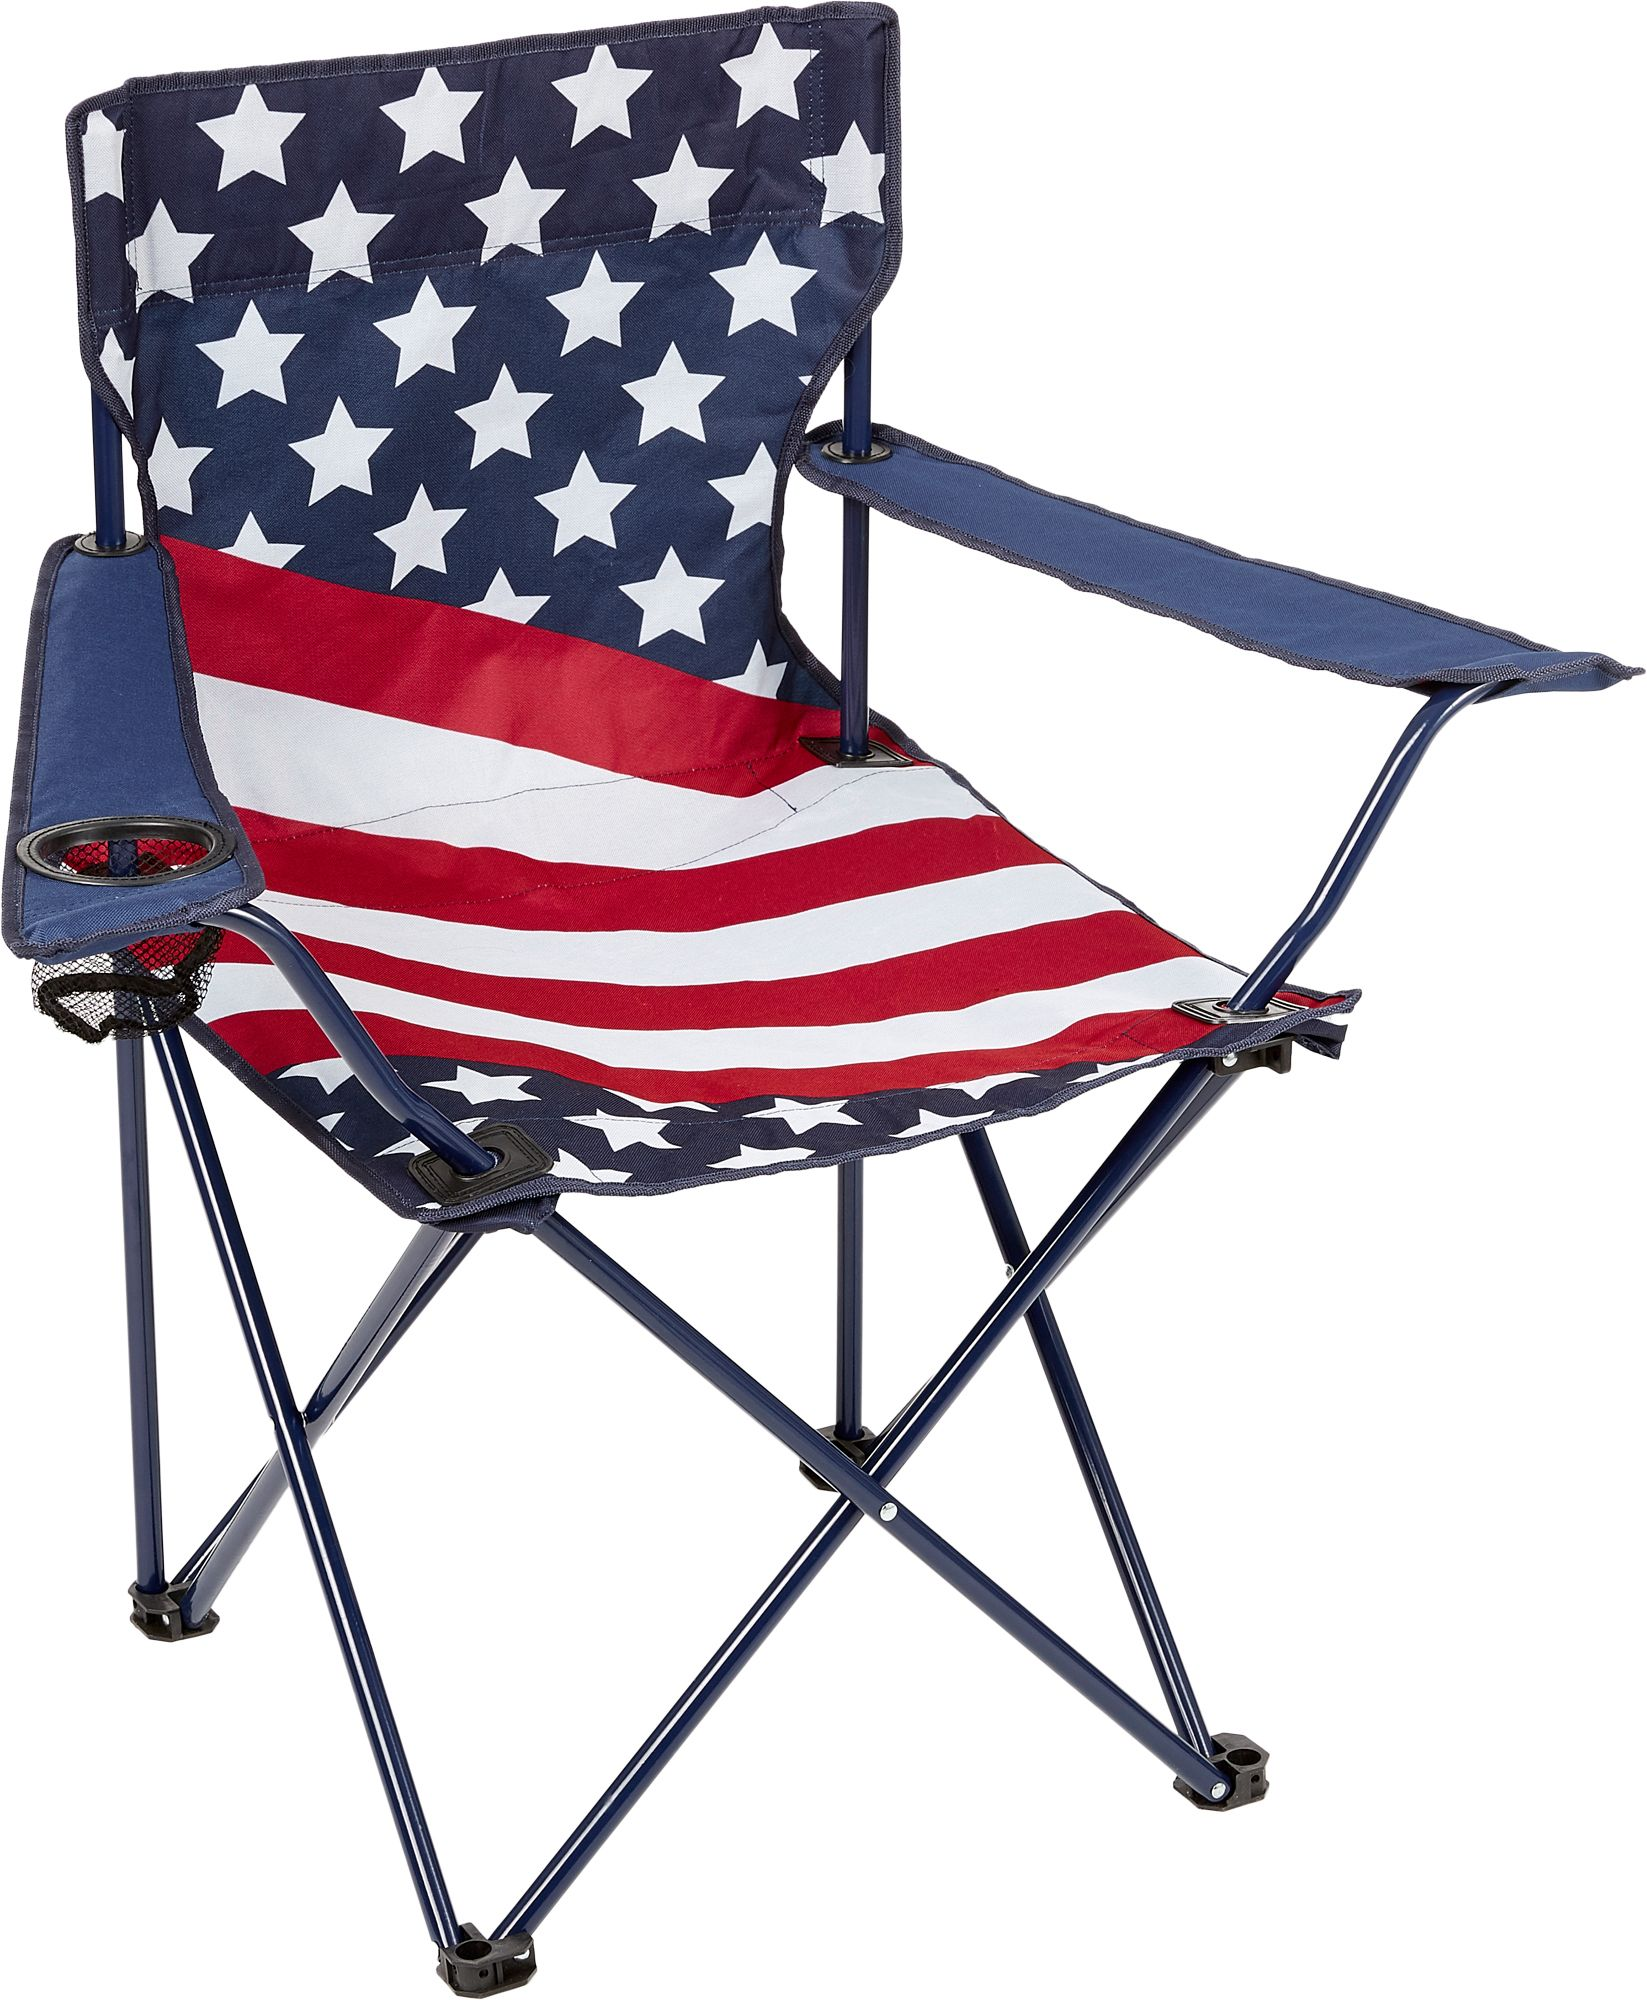 Clearance Folding & Portable Chairs